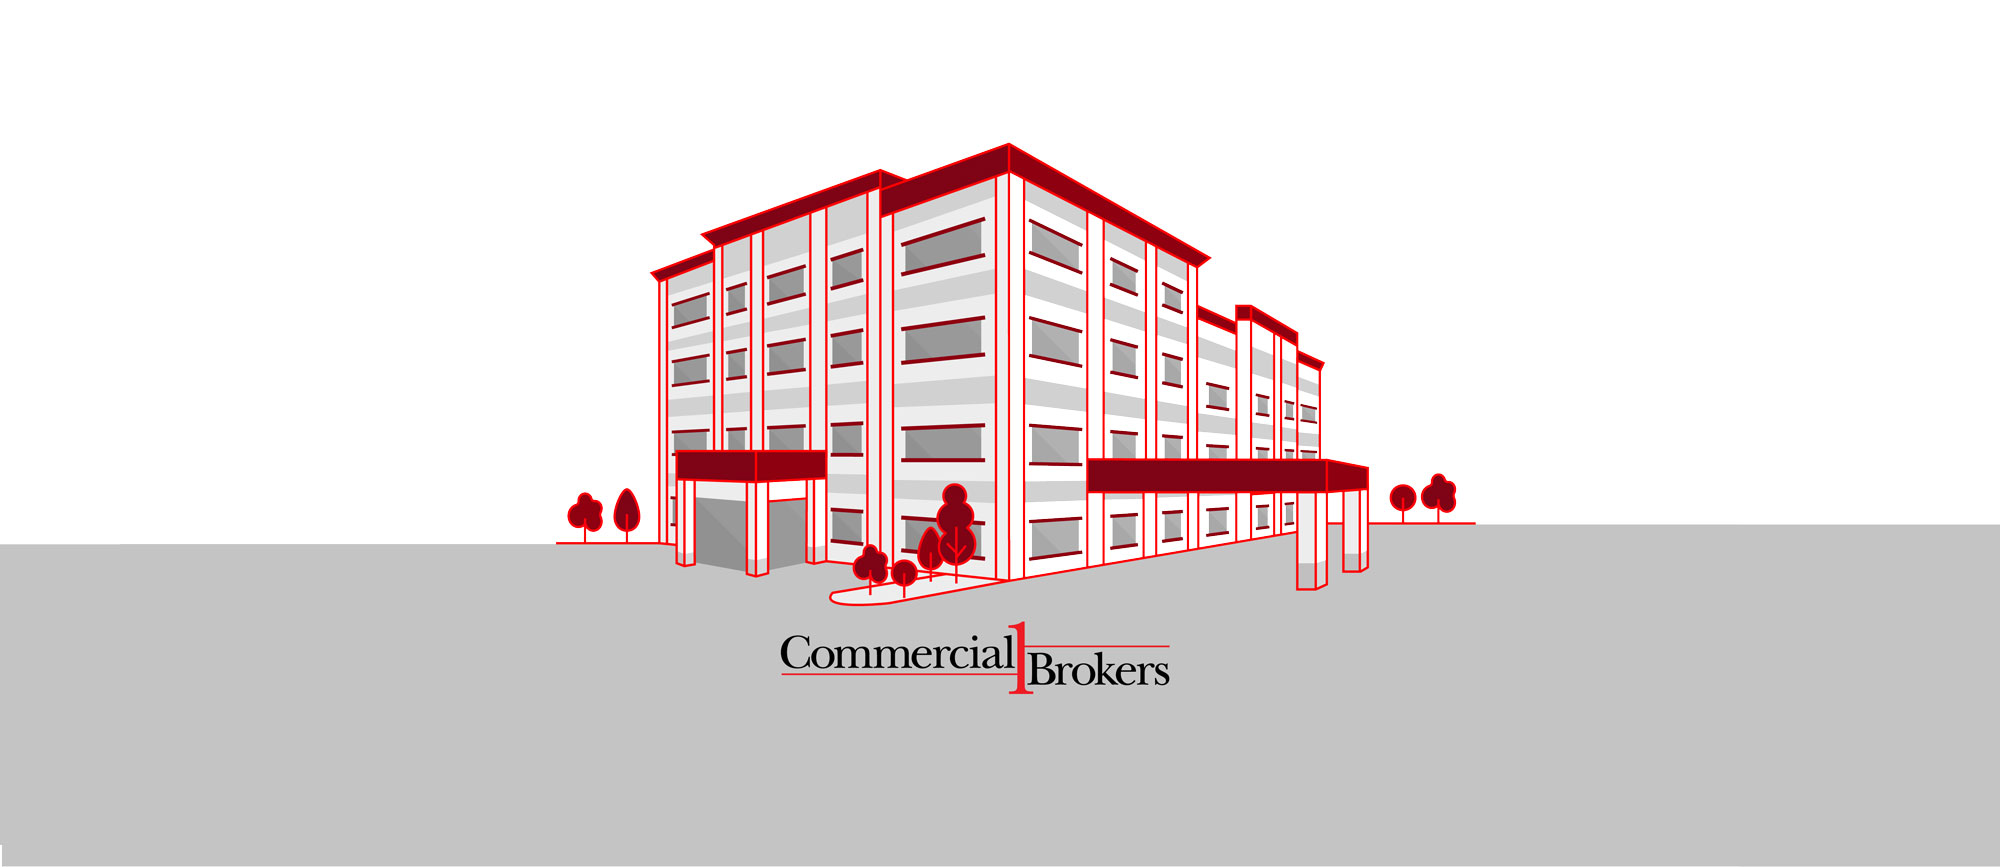 illustration of Commercial 1 Brokers Branson, Mo location